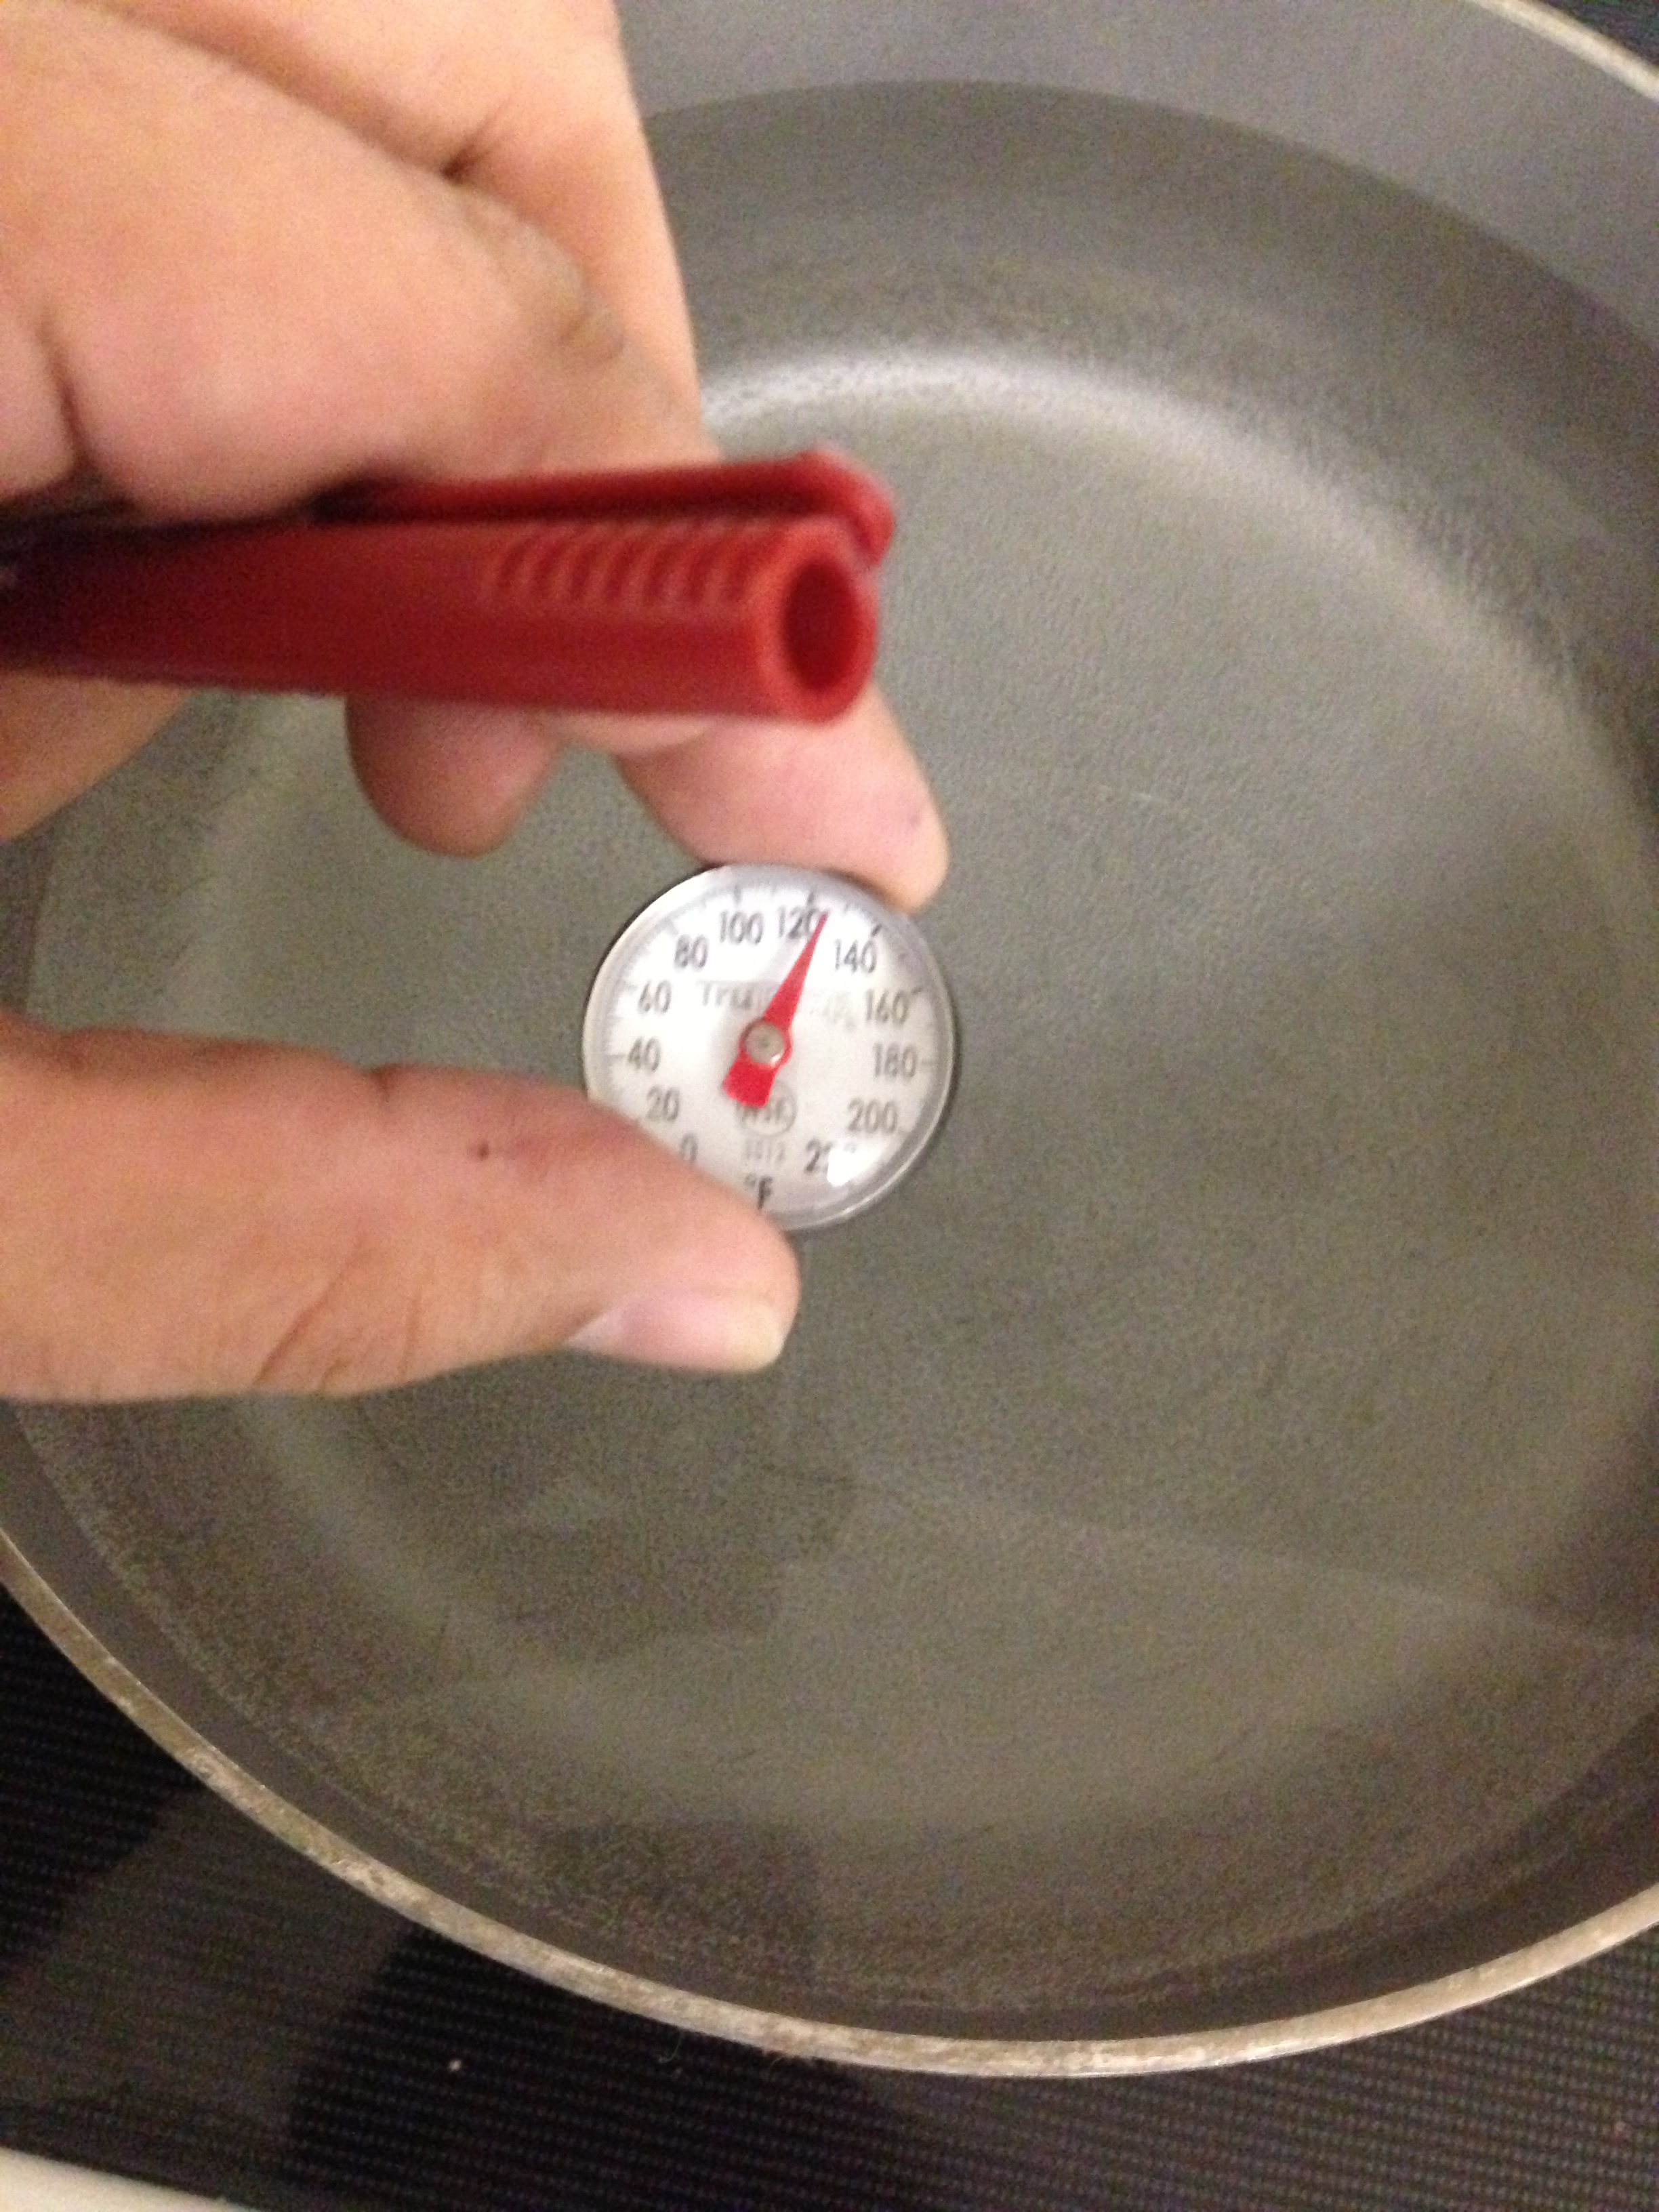 Temperature at 120F